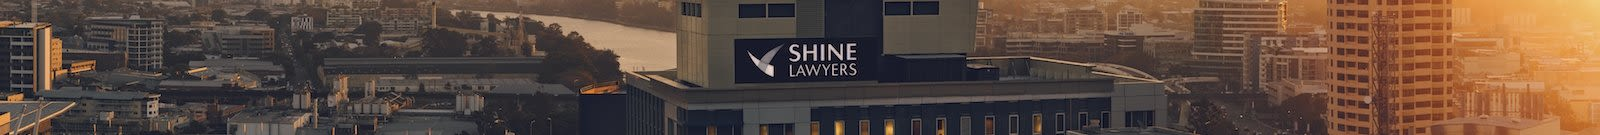 Shine Lawyers | wickham securities class action | Shine Lawyers